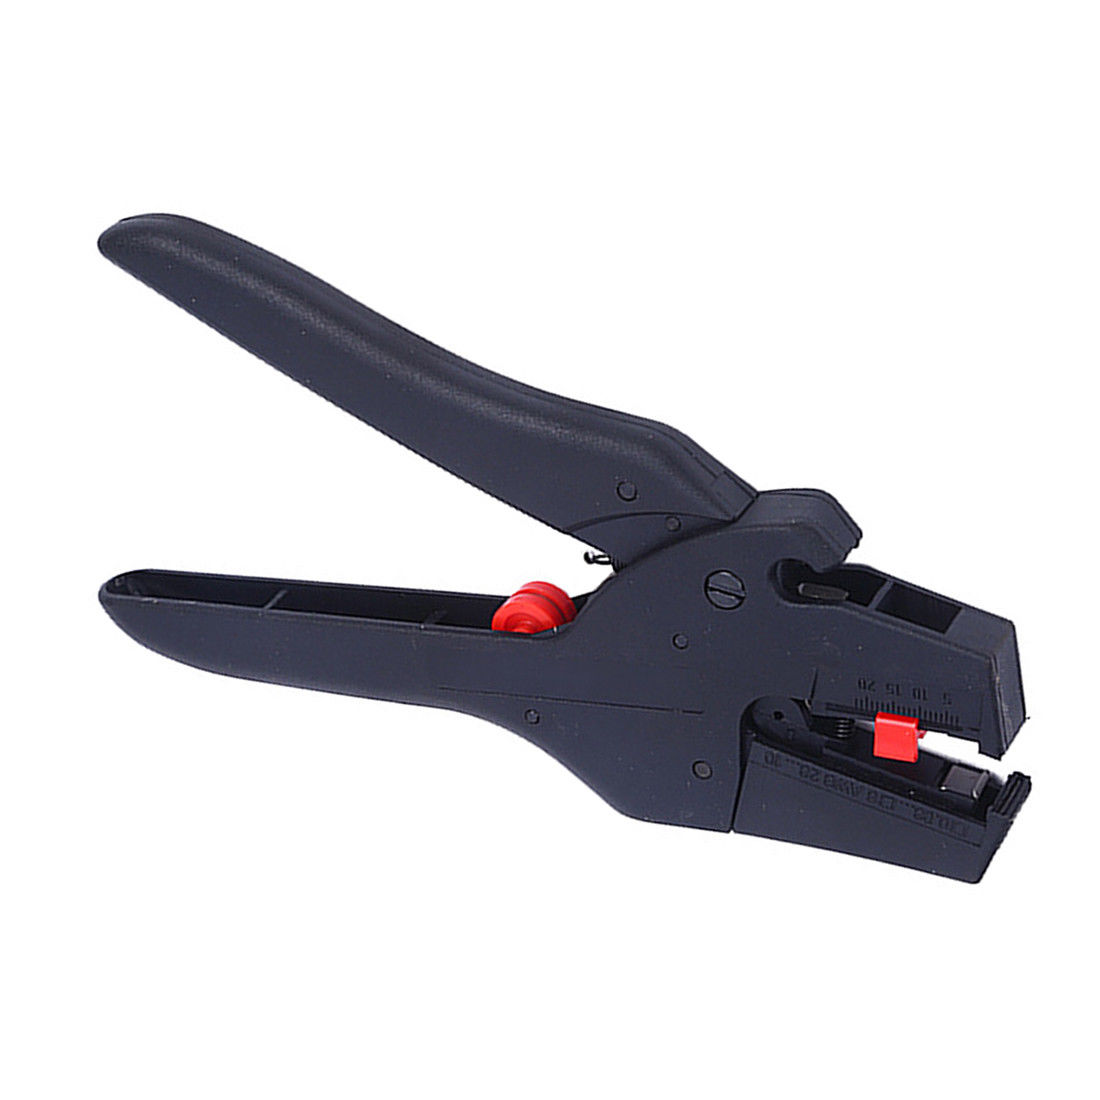 FS-D3 Tool Self-Adjusting Insulation Wire Stripper Range AWG  28-10 Crimping Pliers